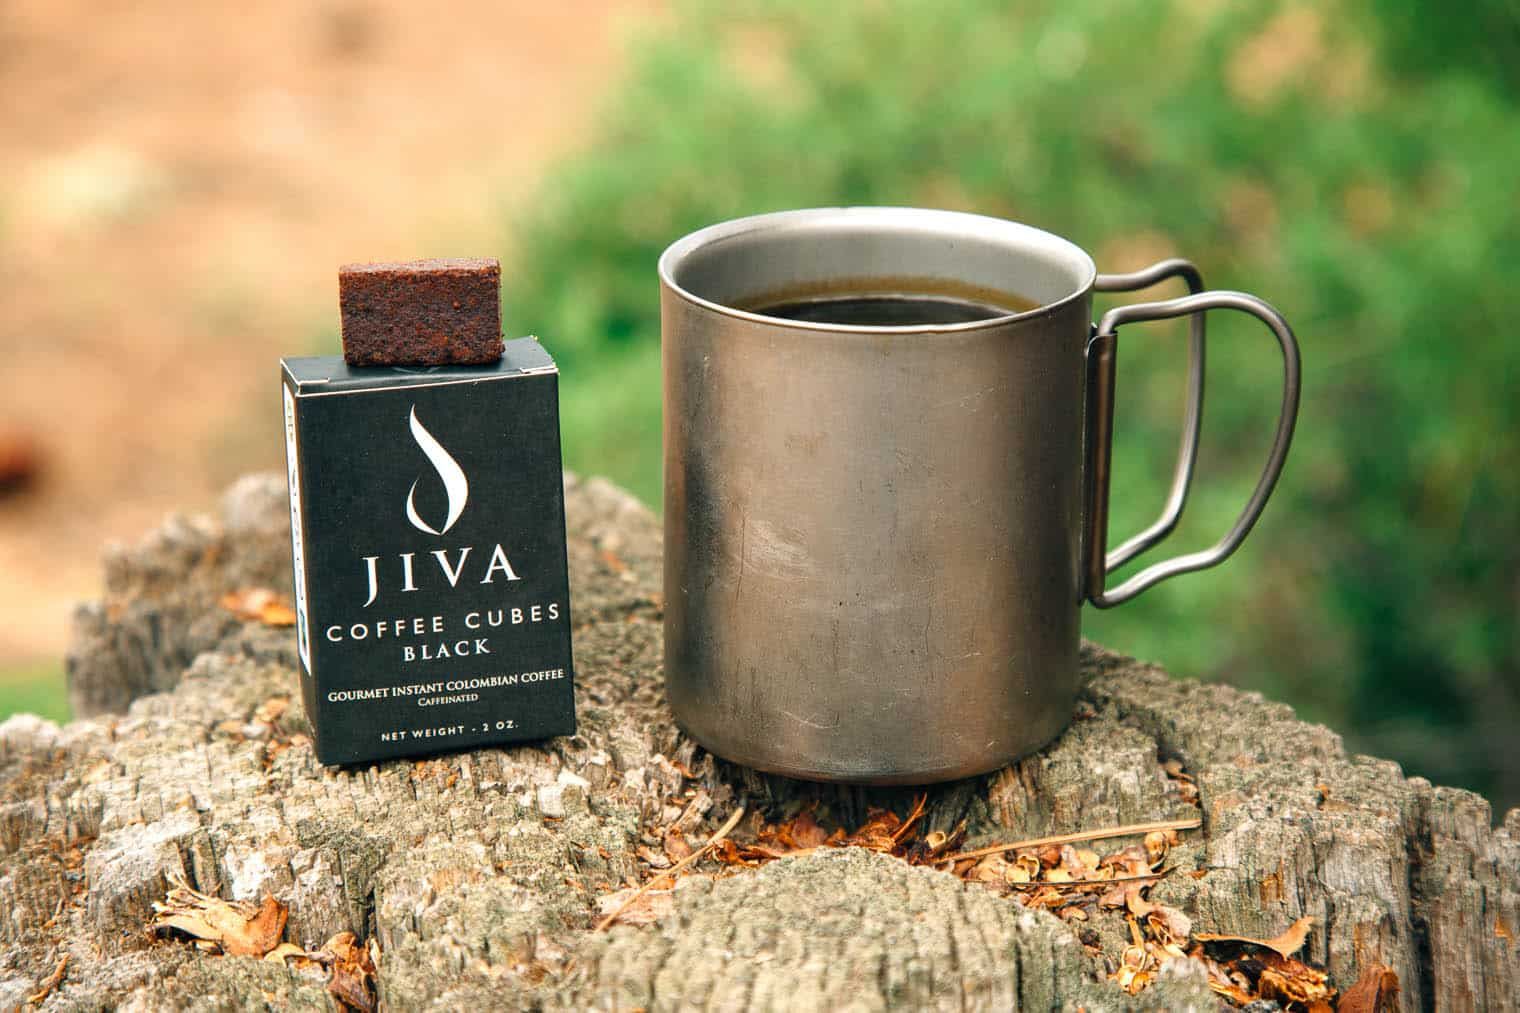 Jiva Cube Instant Coffee - Instant Coffee for Backpacking